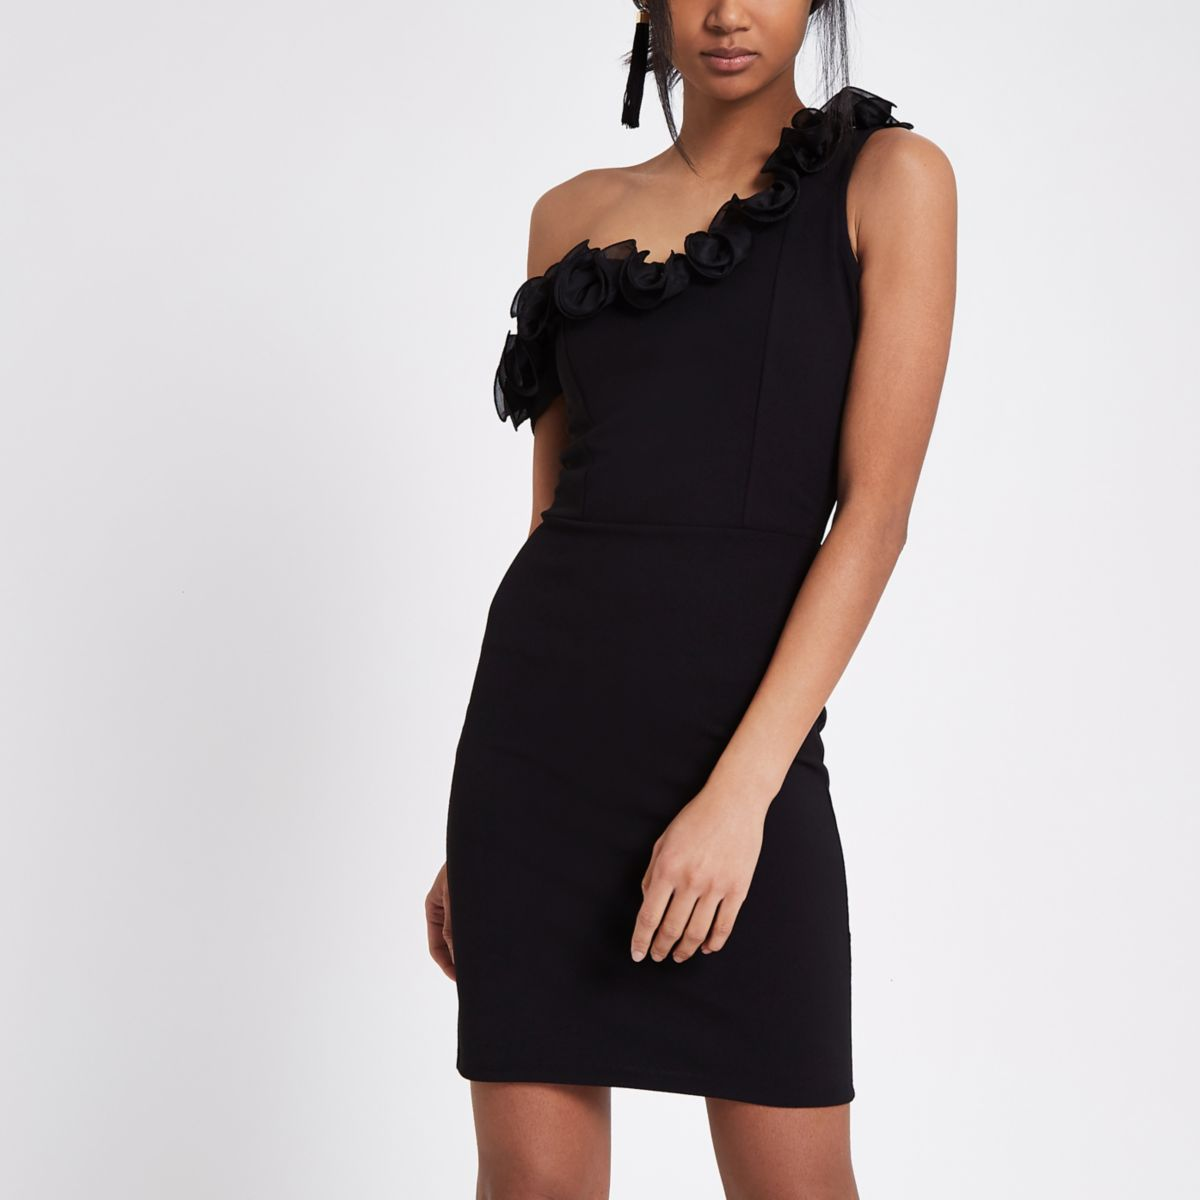 Black one shoulder frill bodycon dress